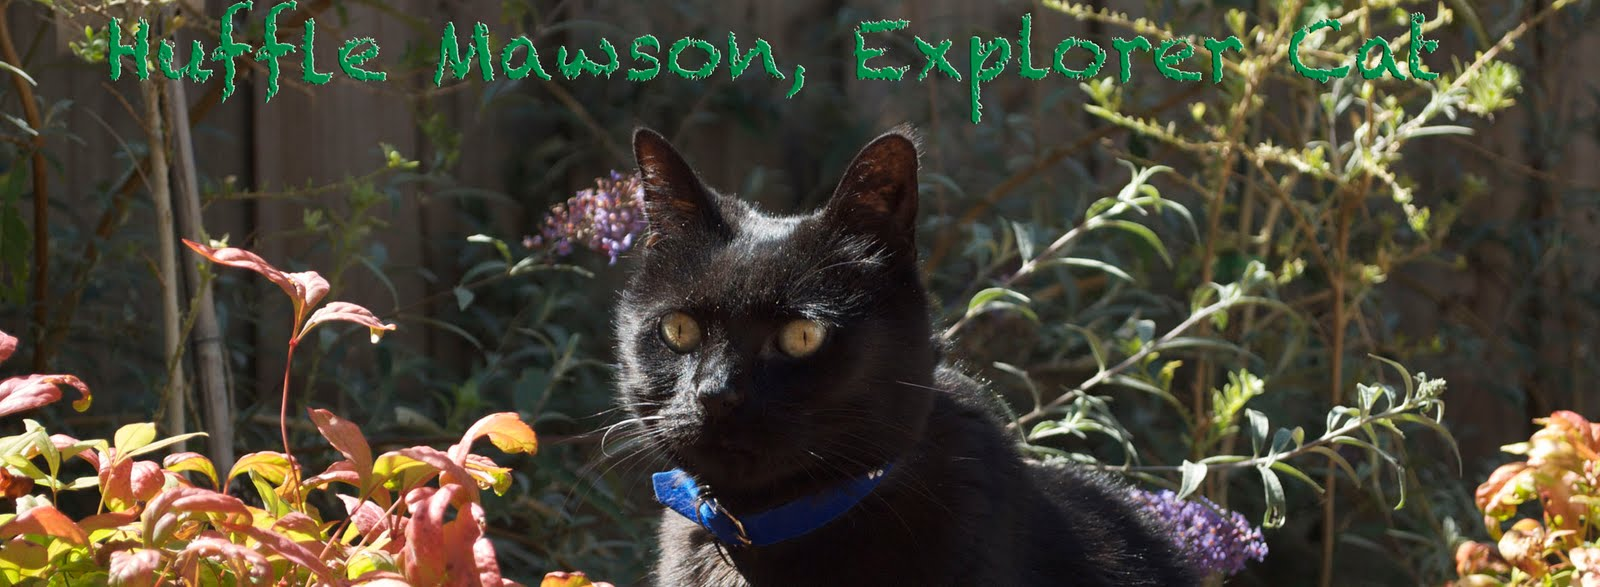 Huffle Mawson, Explorer Cat